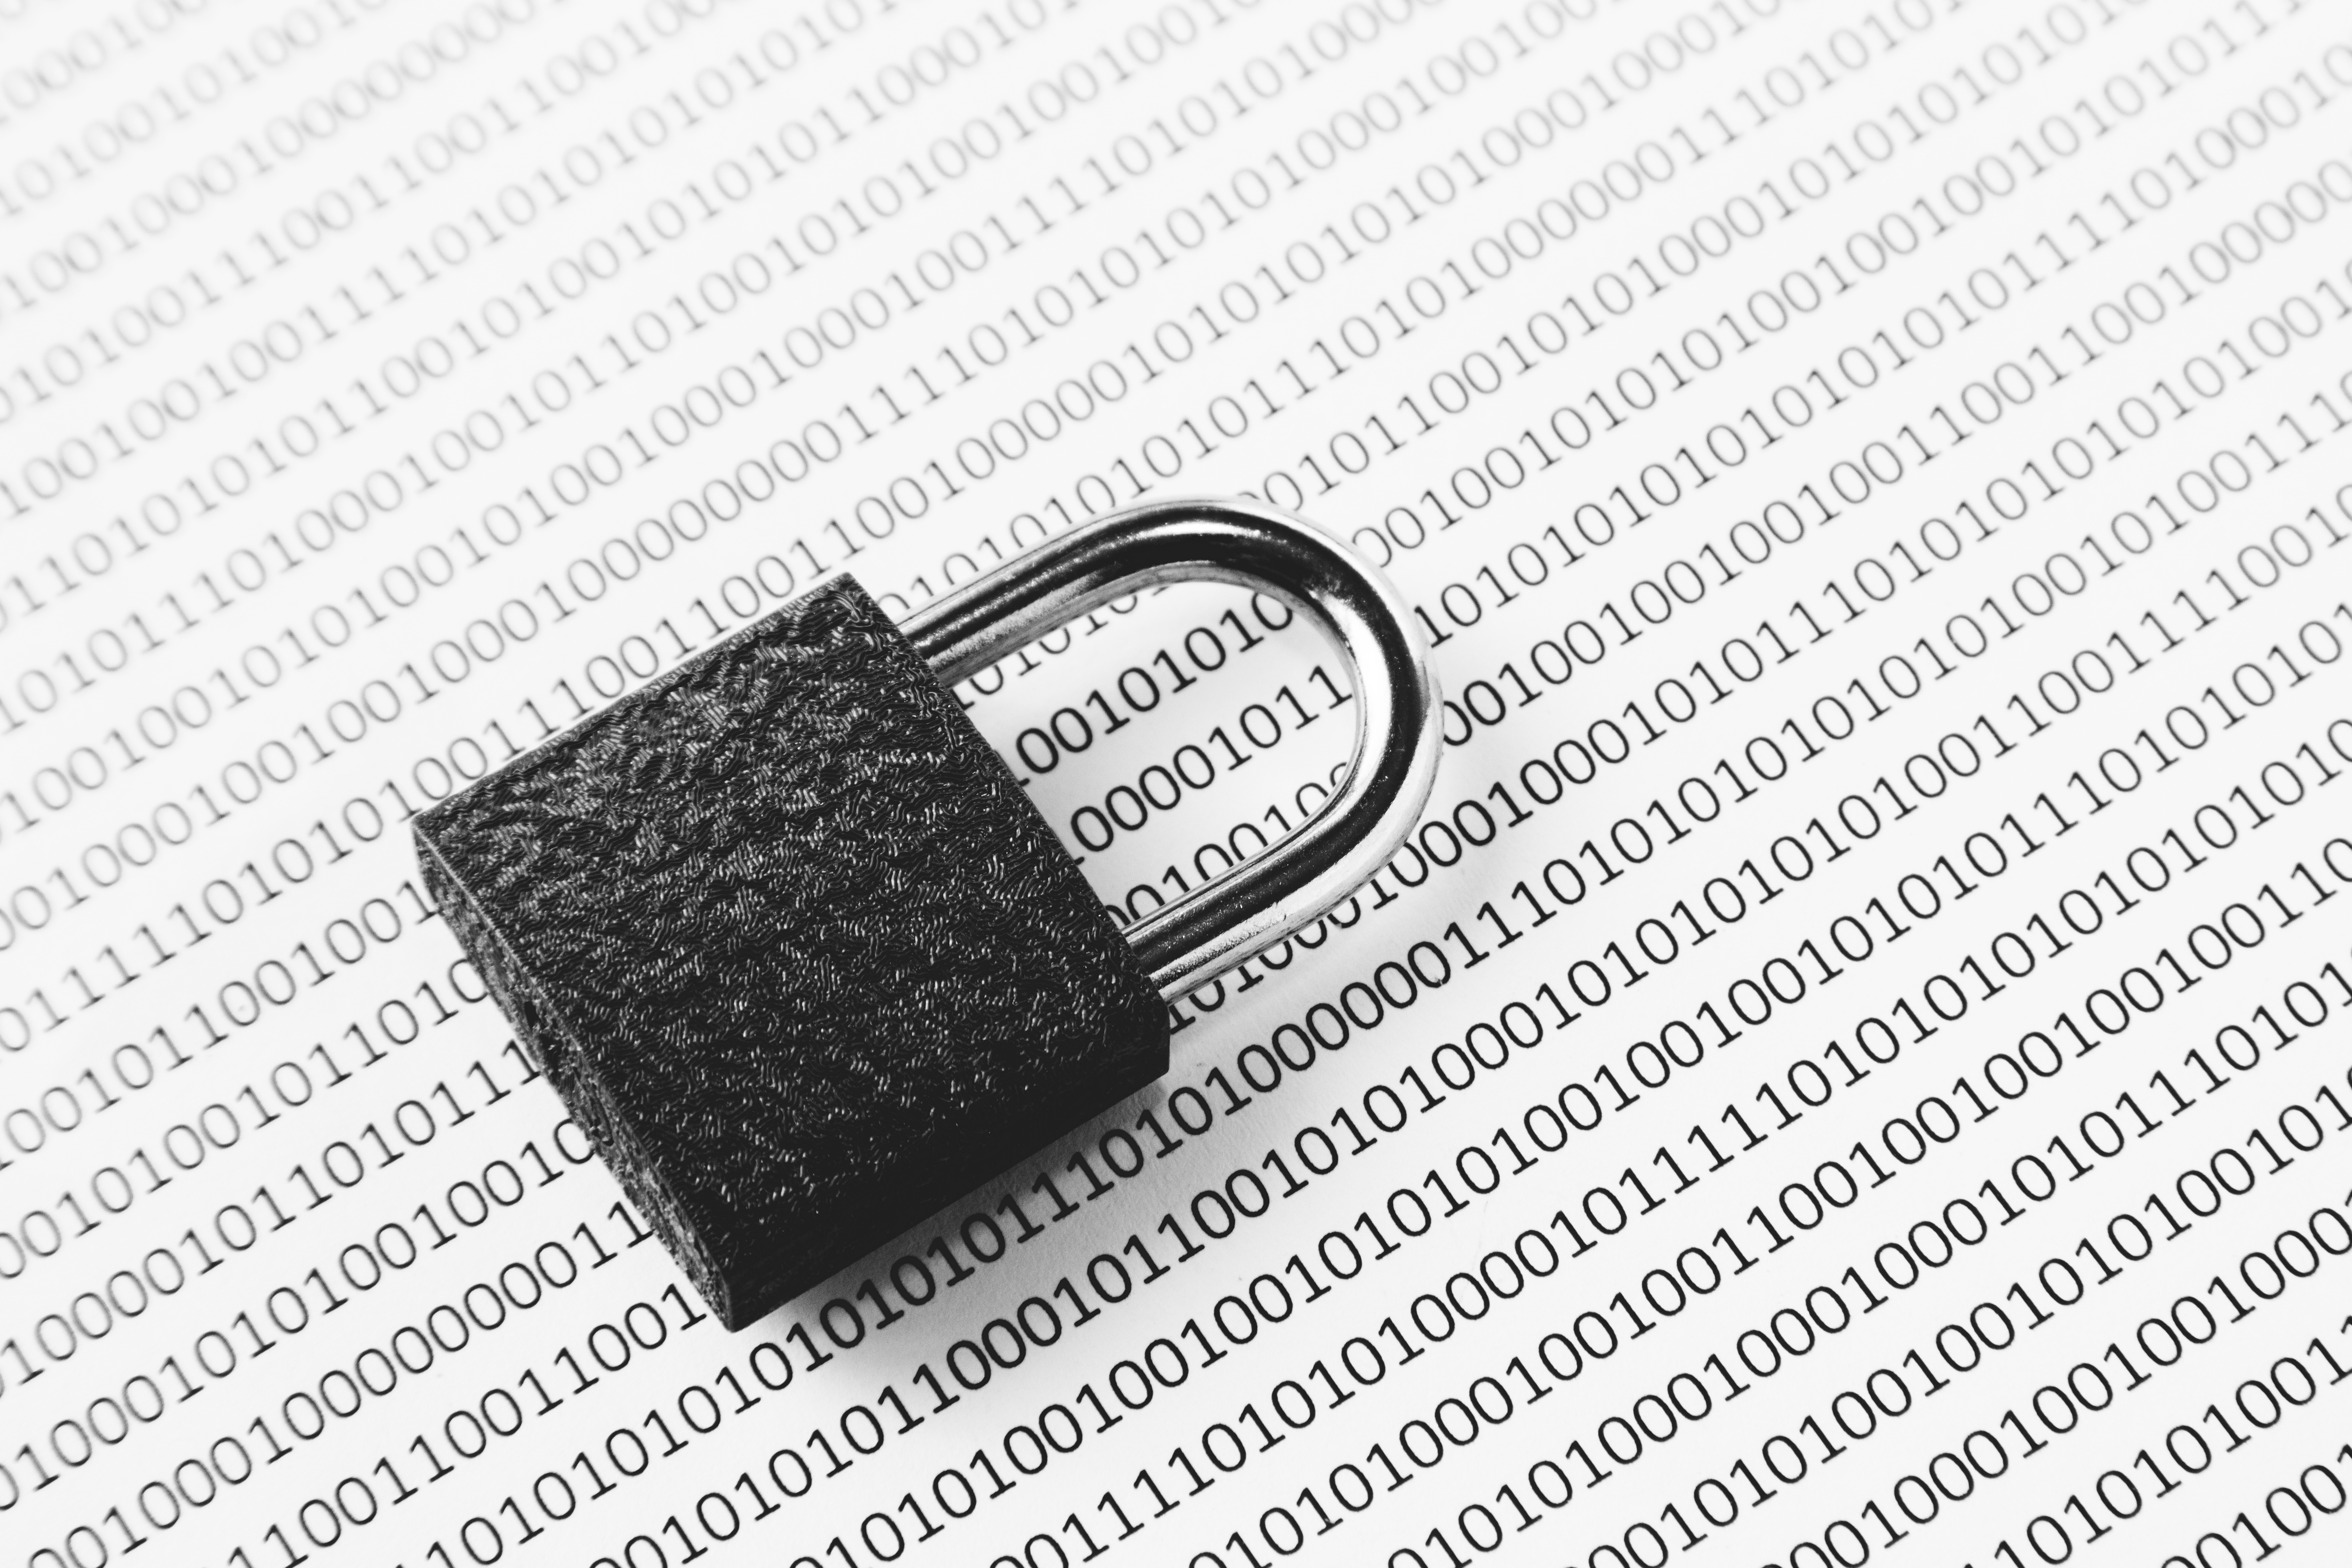 cyber security lock and code image